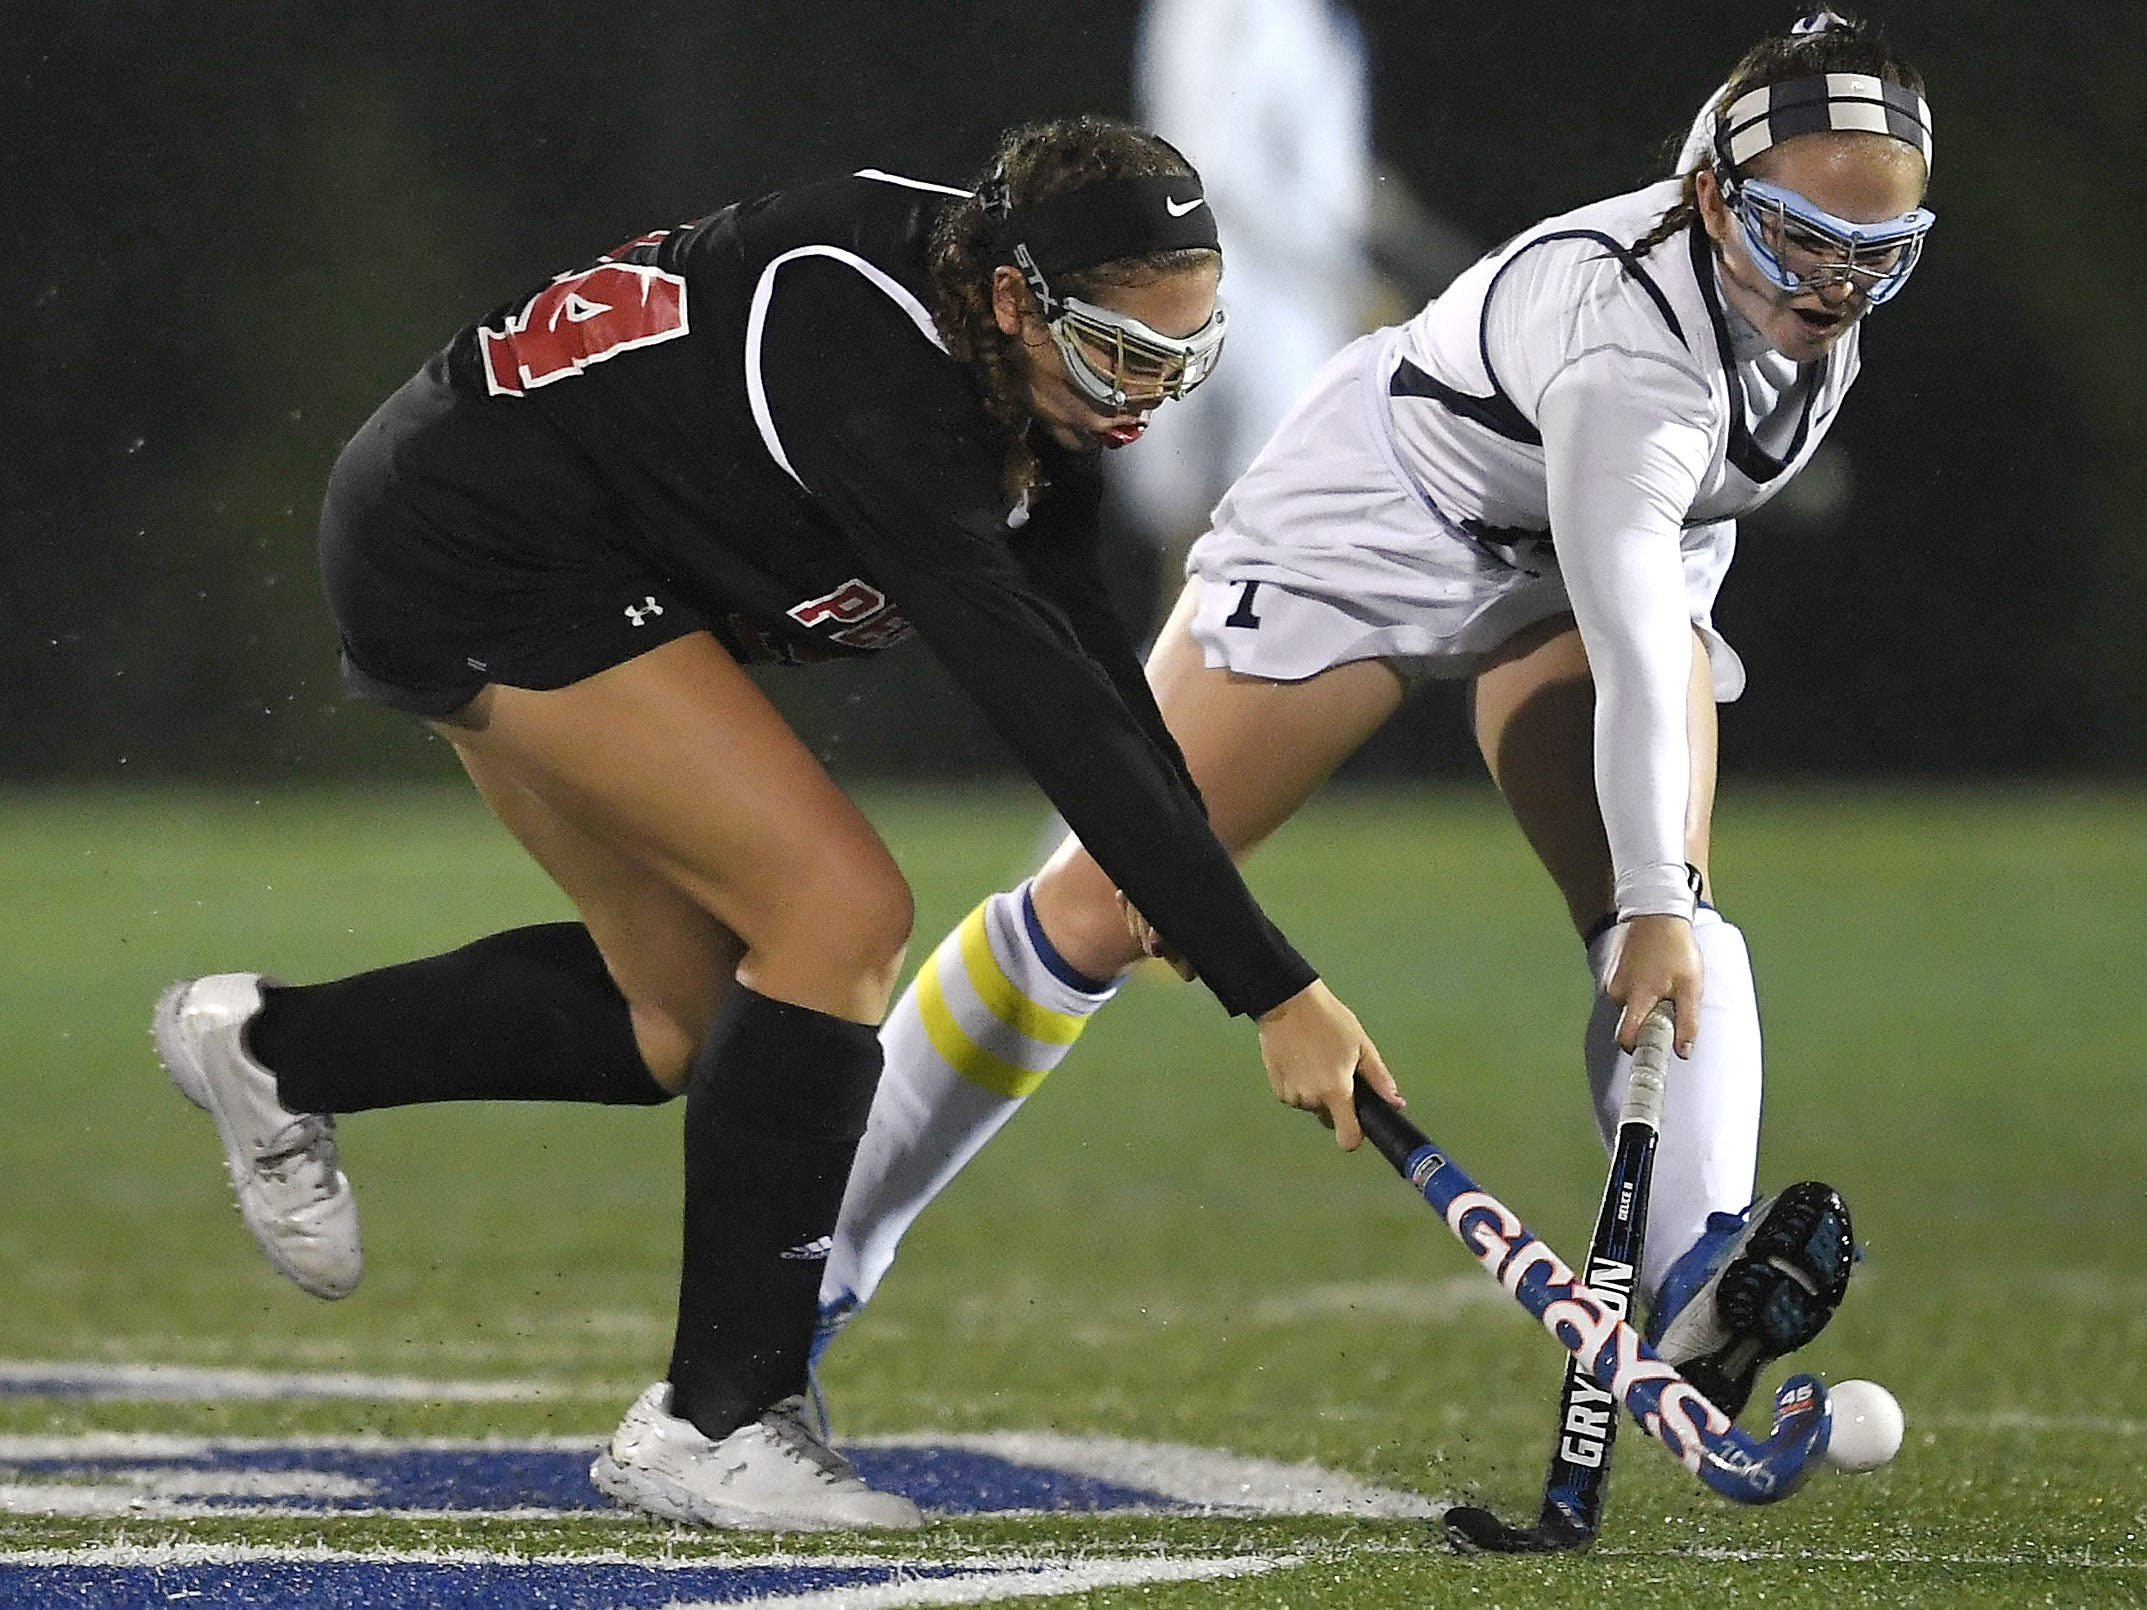 Penfield's Katherine Rinere, left, and Webster Thomas' Leeanna Caruso reach for the ball during a regular season game played at Webster Thomas High School, Monday, Oct. 1, 2018. Penfield beat Webster Thomas in overtime 2-1.